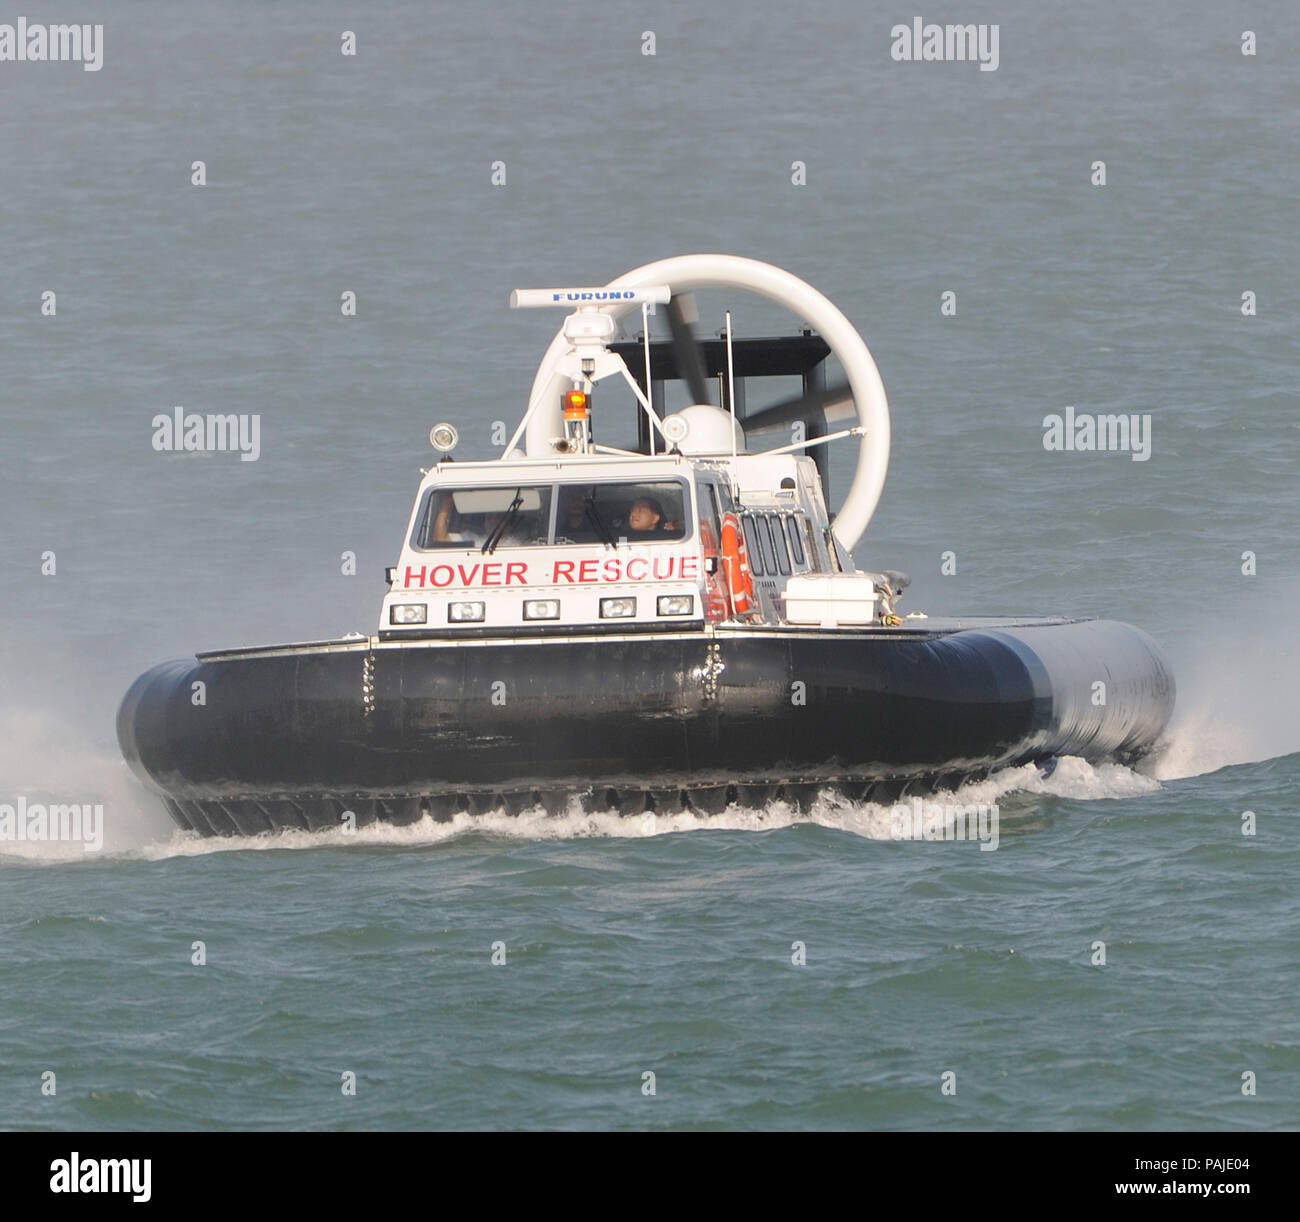 Changi-Airport Emergency Service brand-new Griffon Hoverwork 8000TD rescue hovercraft flying across the sea of the Straits of Singapore Stock Photo